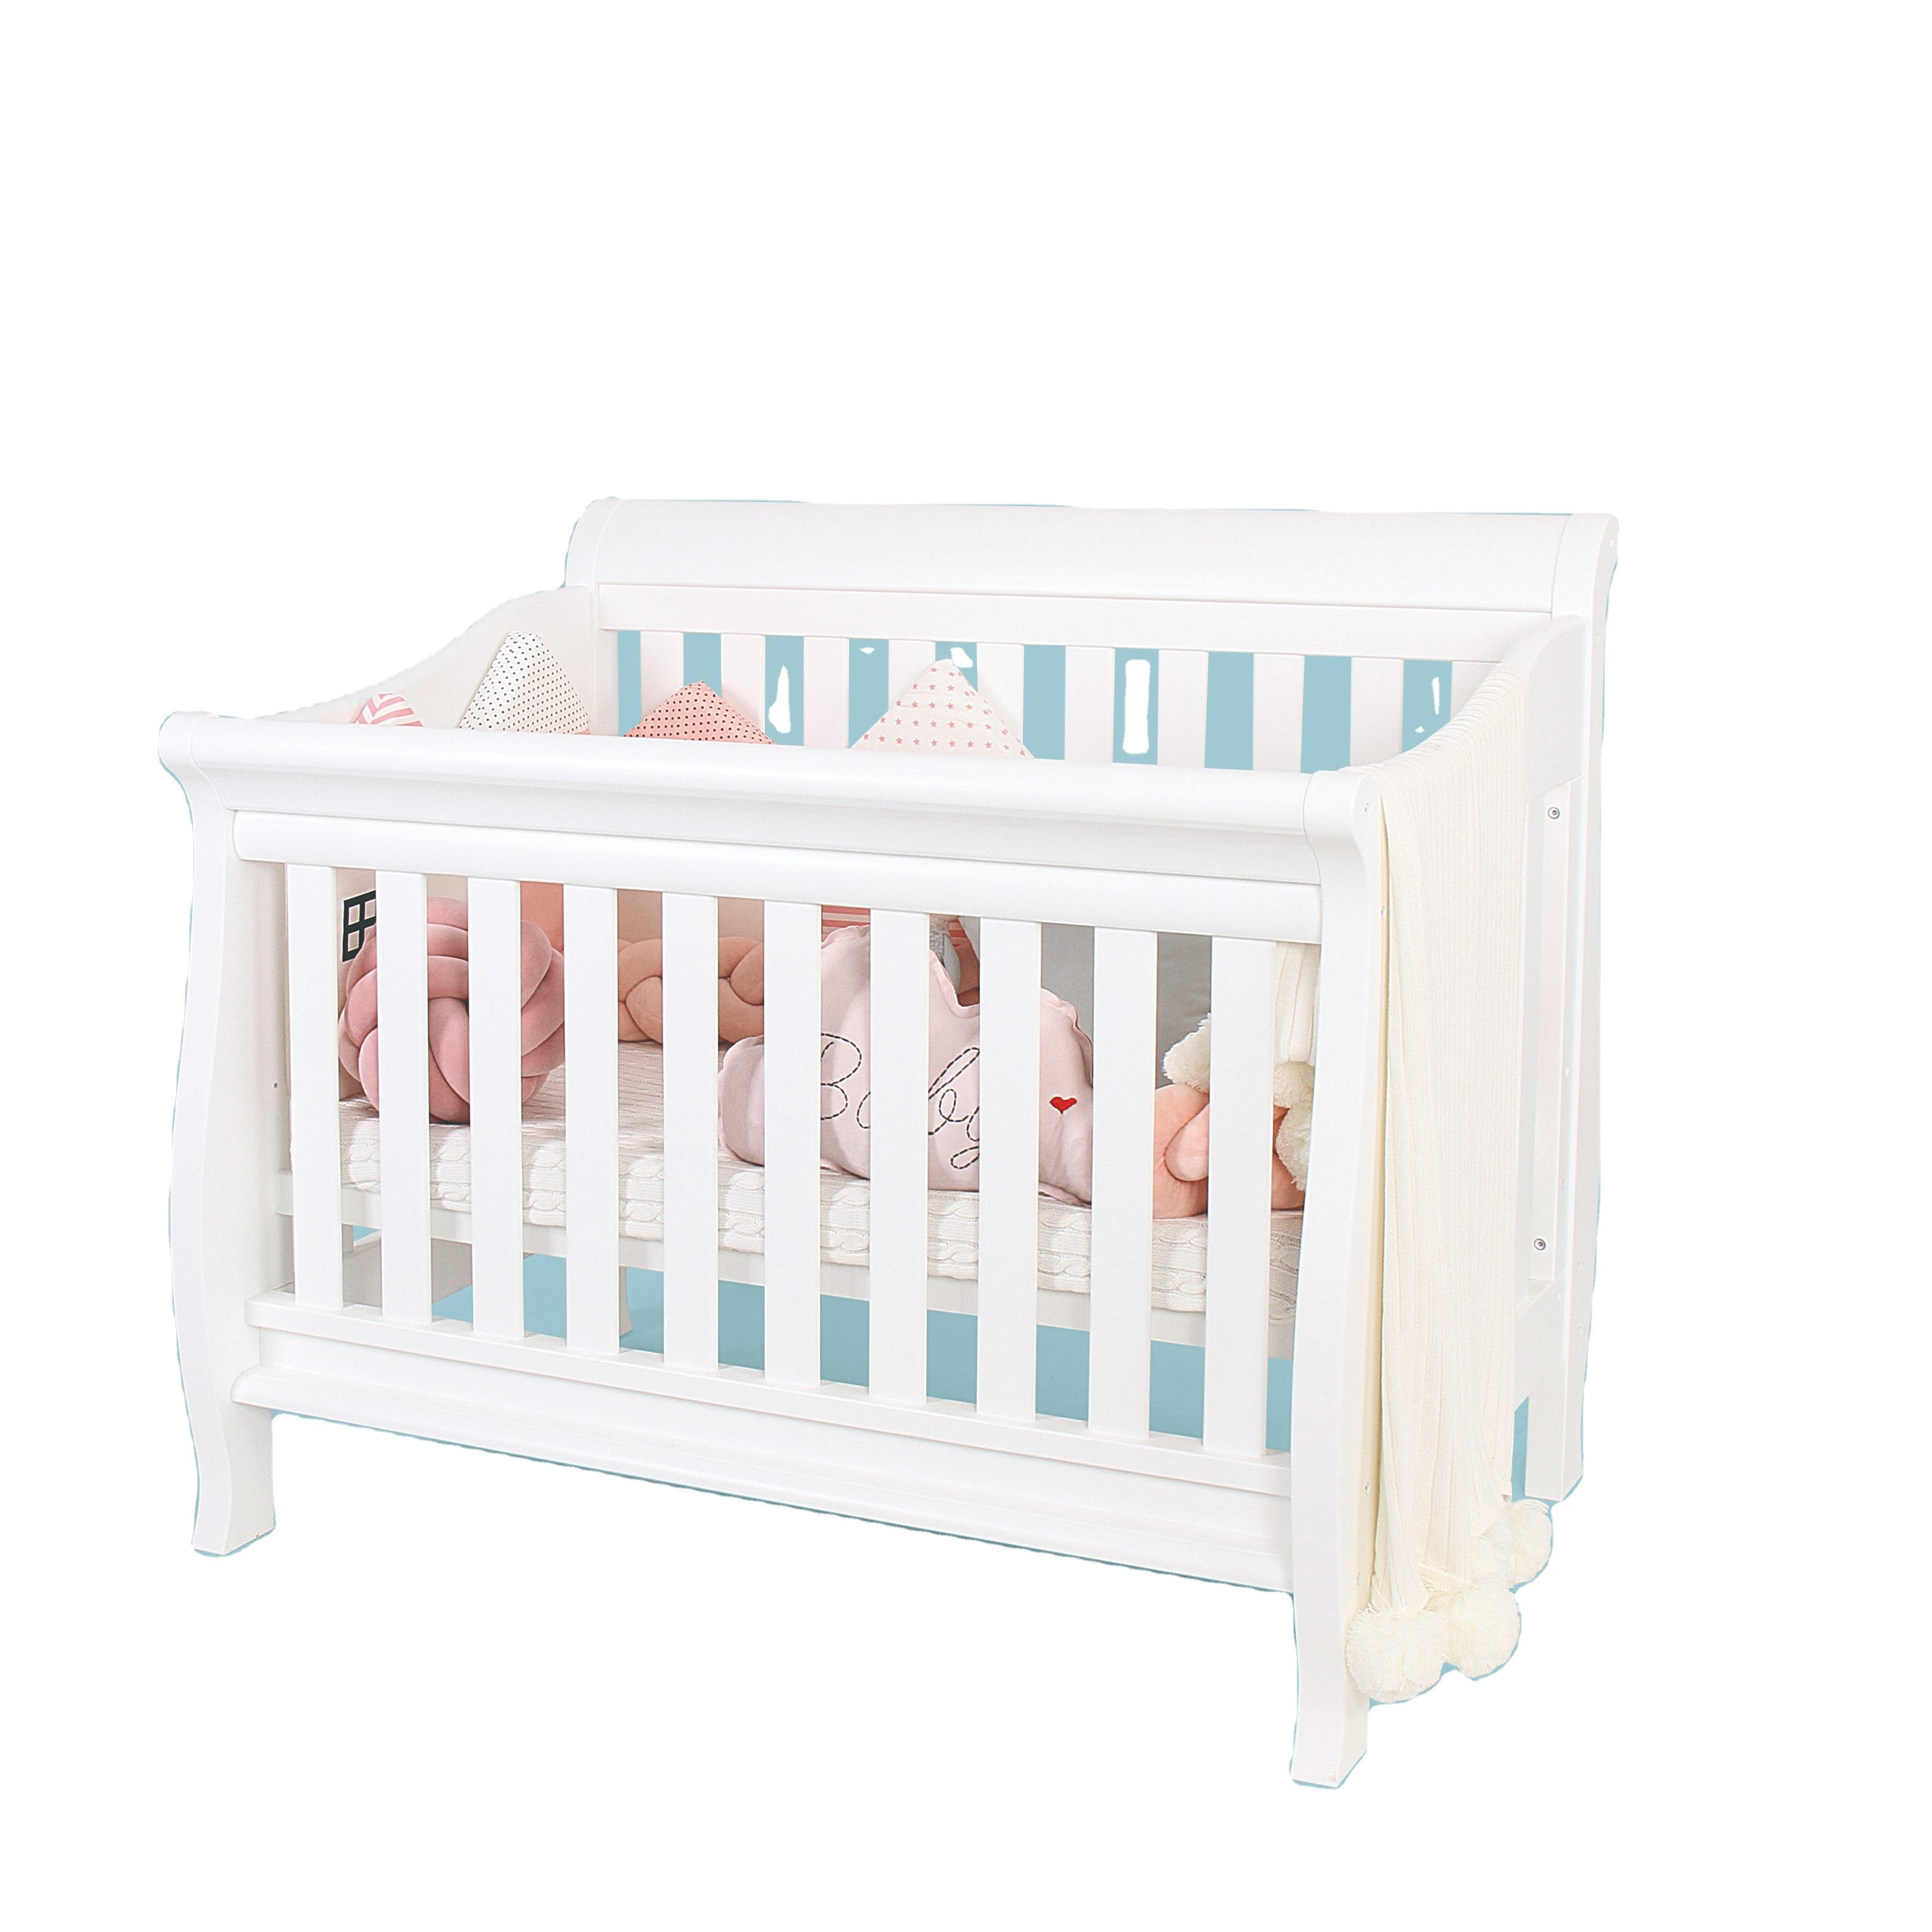 Multifunction Baby Crib Bed Convertible Crib Protector Baby White Crib Baby Kids bed